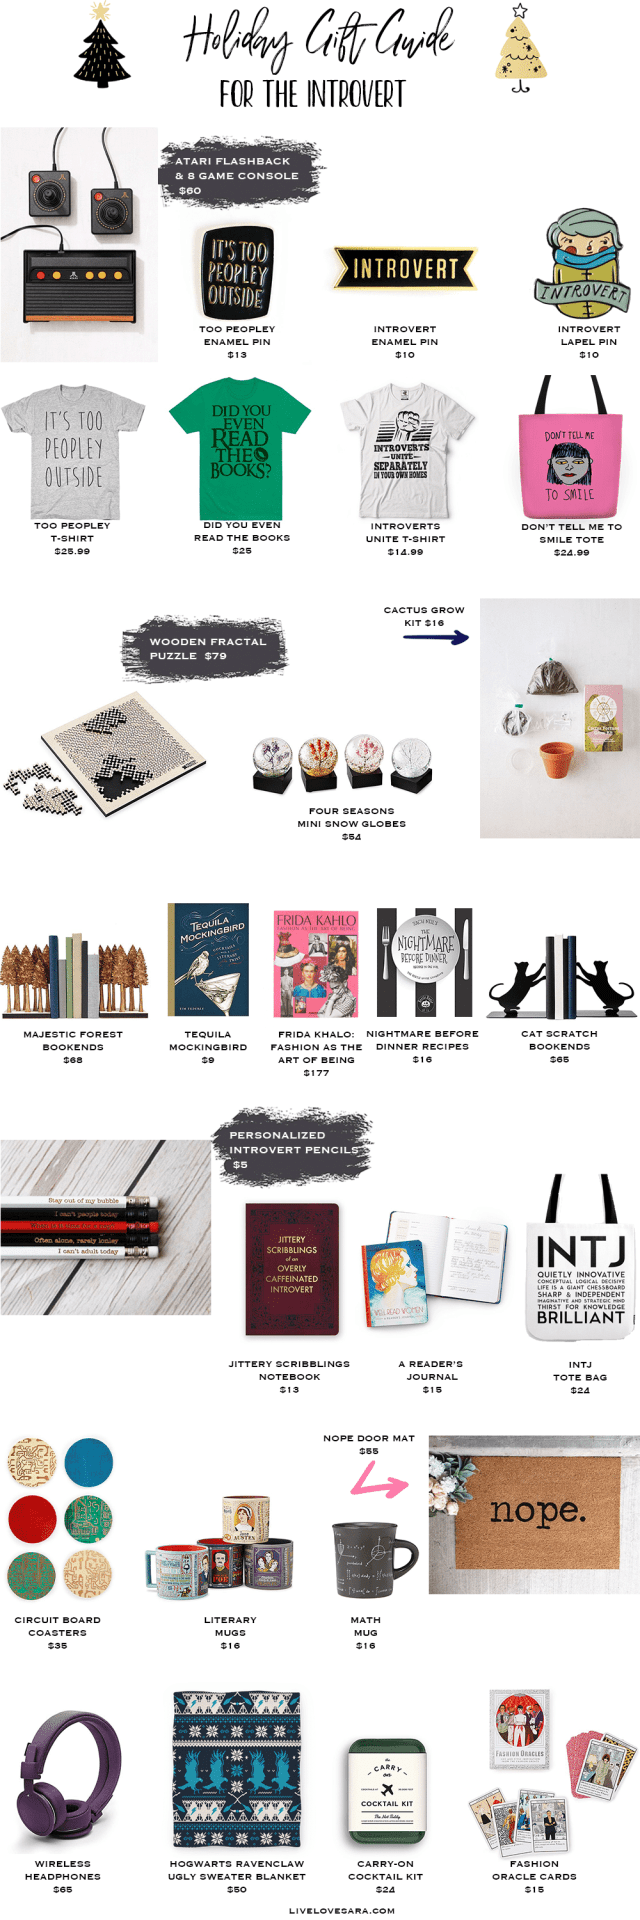 Holiday Gift Guide for the Introvert. #giftguide #giftideas #christmashopping #christmasgiftguide #introvert #introvertsunite #holidaygiftguide #christmas #livelovesara